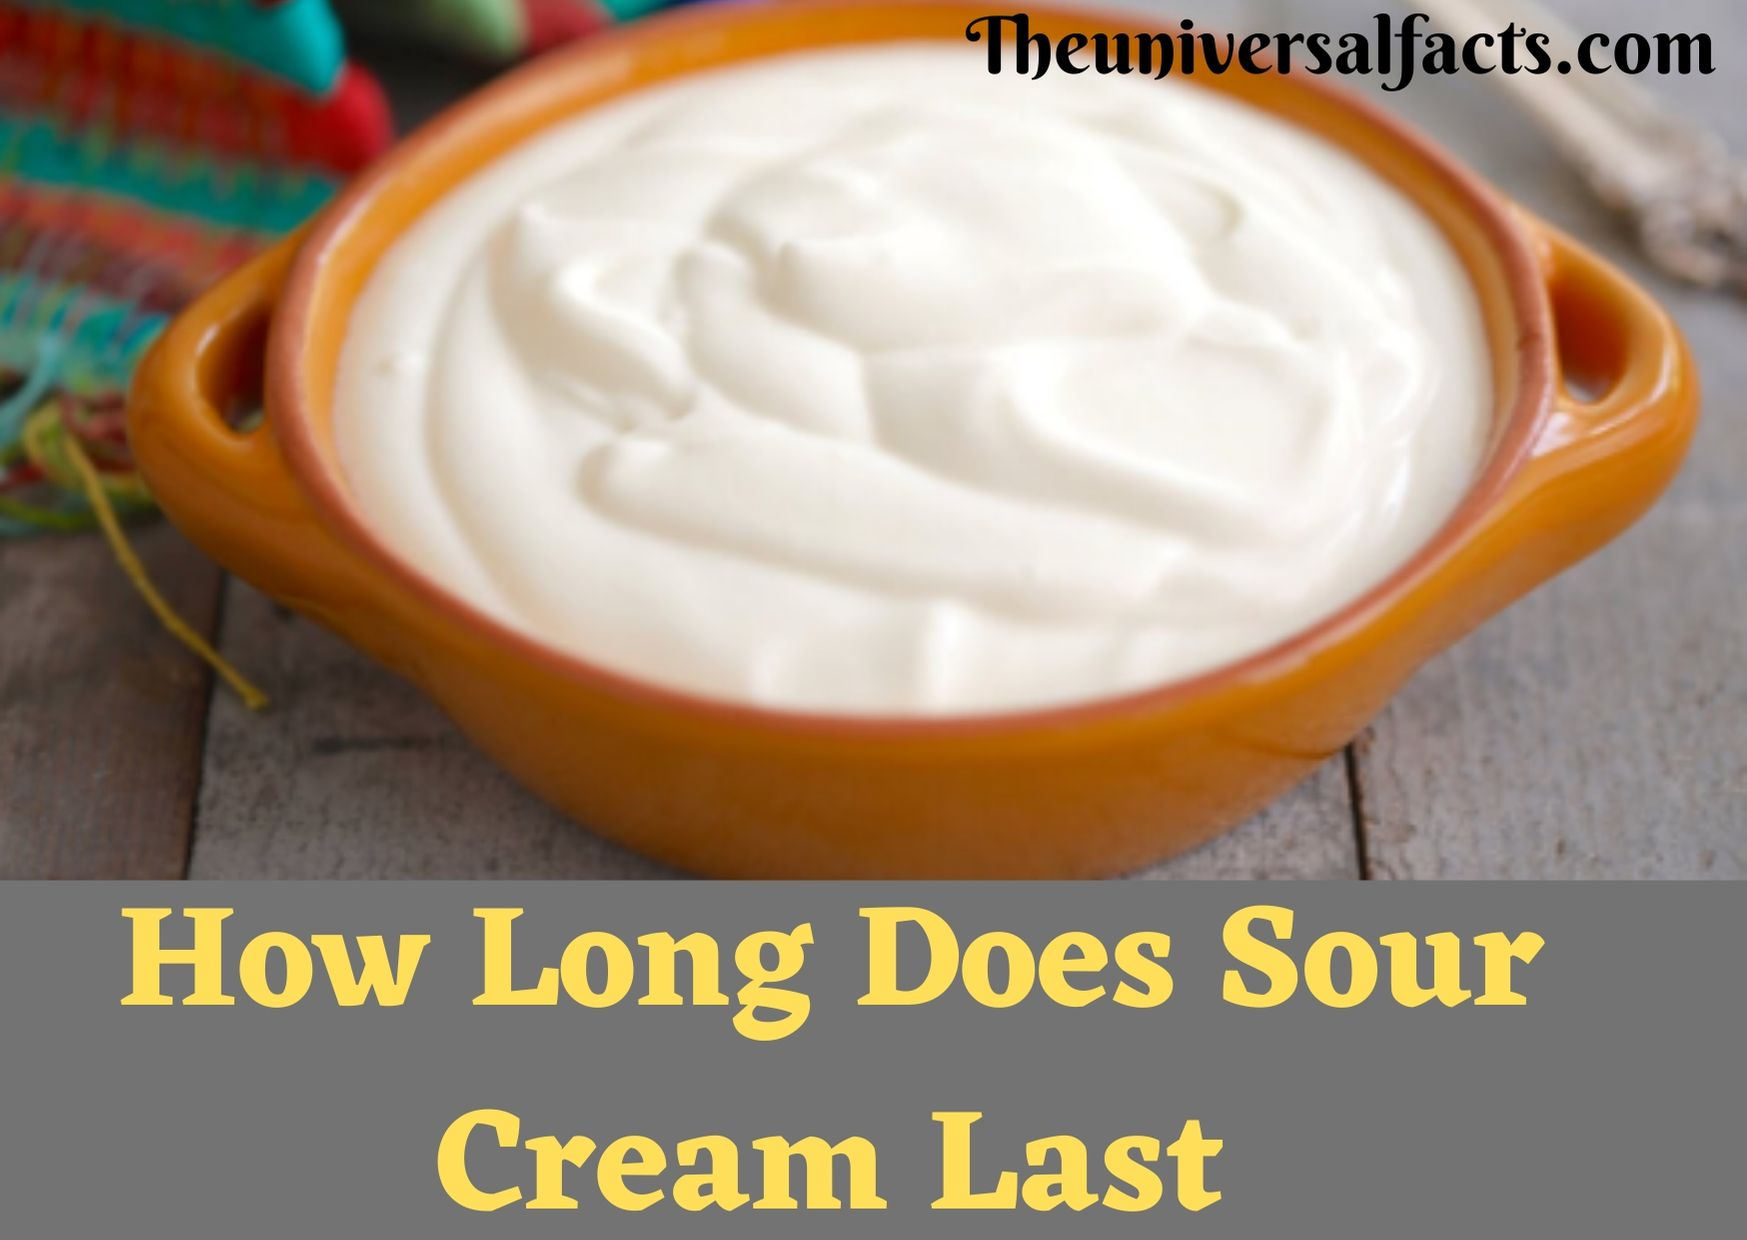 How Long Does Sour Cream Last